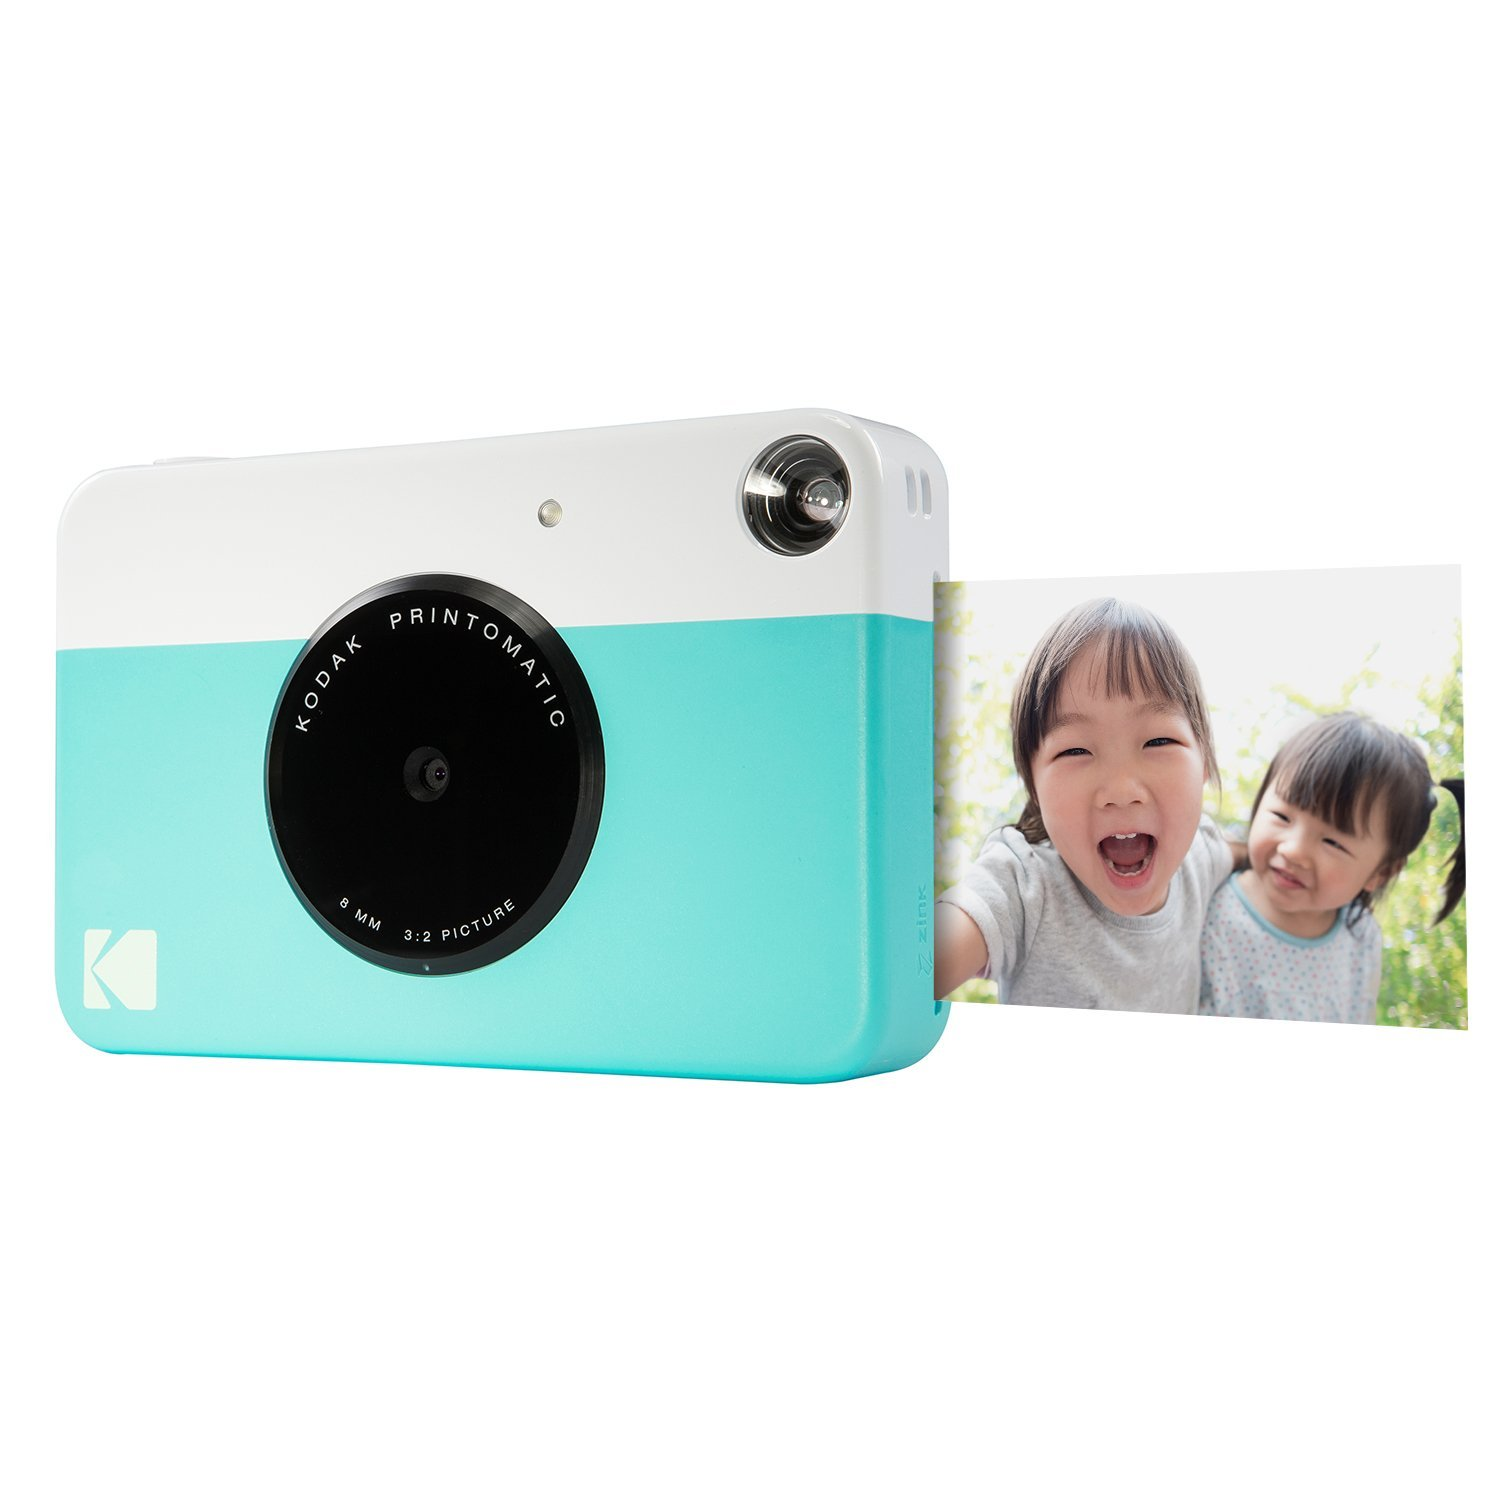 "Kodak PRINTOMATIC Digital Instant Print Camera (Blue), Full Color Prints On ZINK 2x3"" Sticky-Backed Photo Paper - Print Memories Instantly"